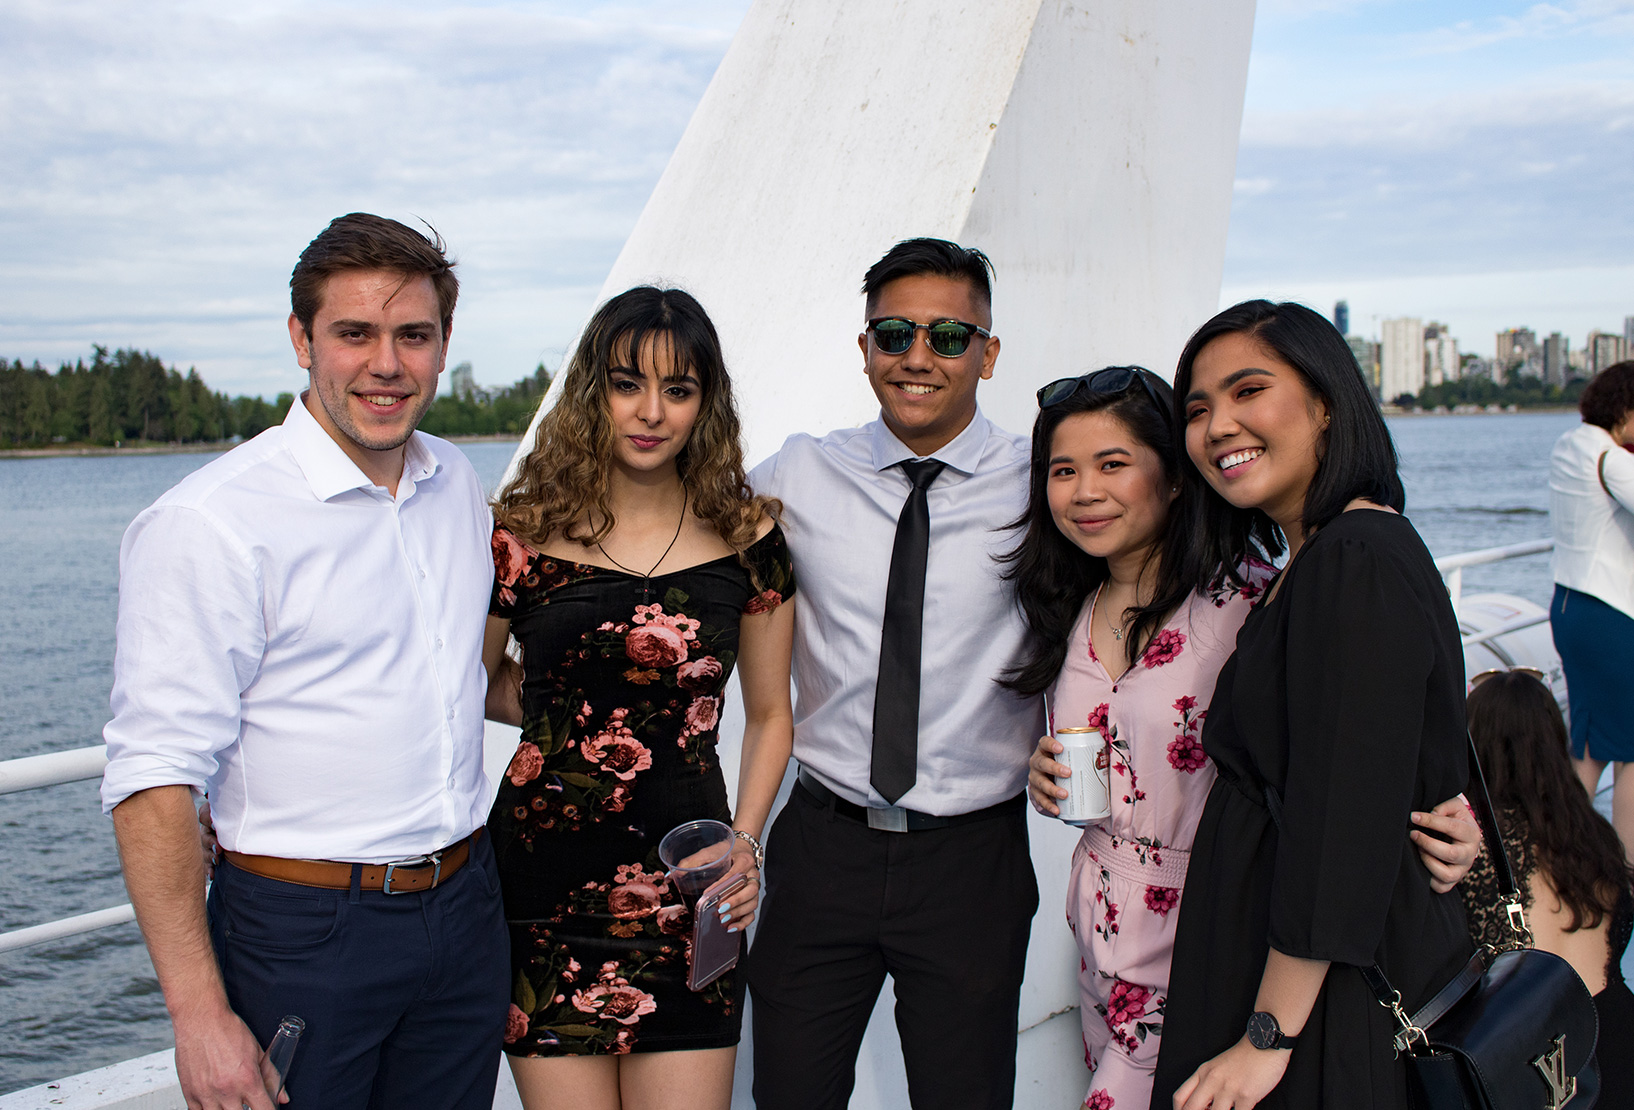 group of students on a boat